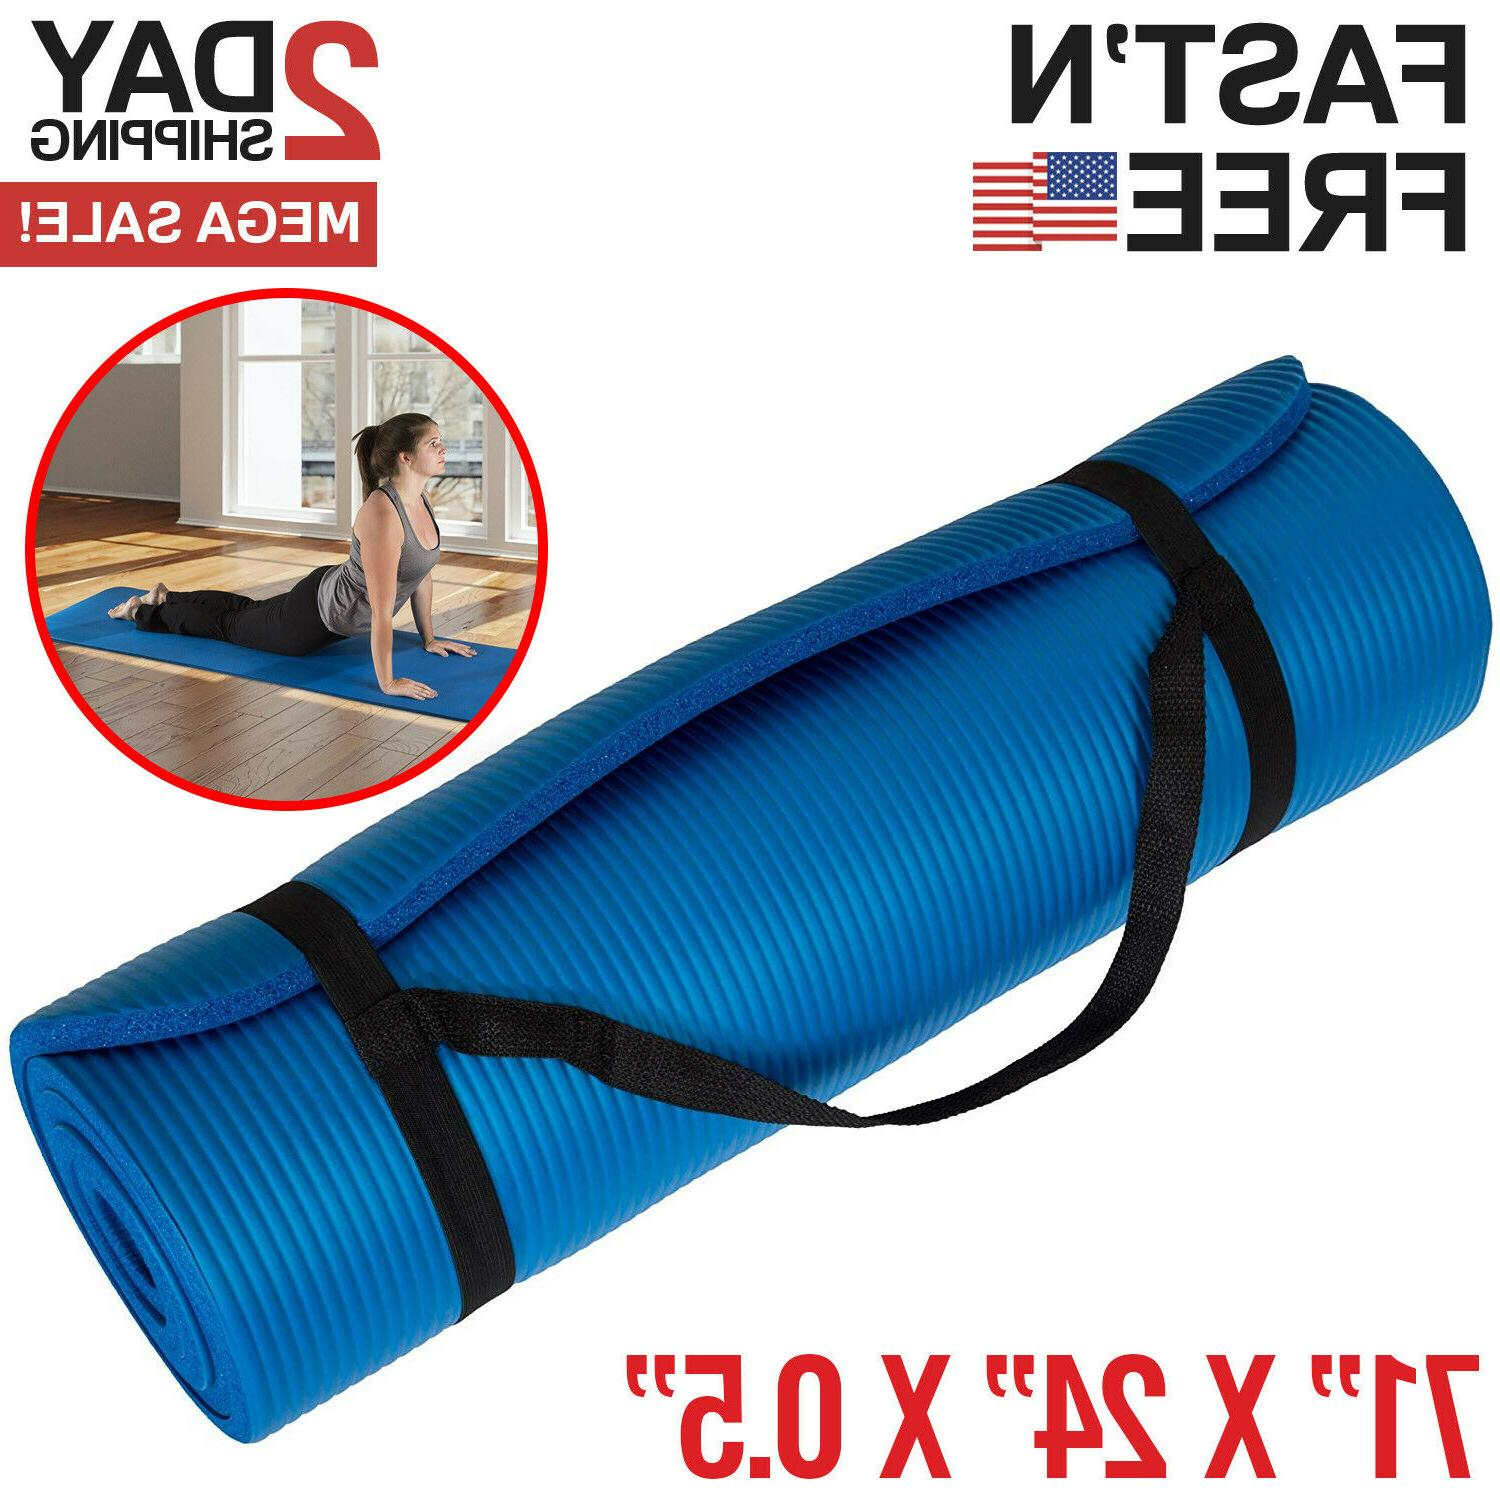 extra thick yoga mat exercise mat workout